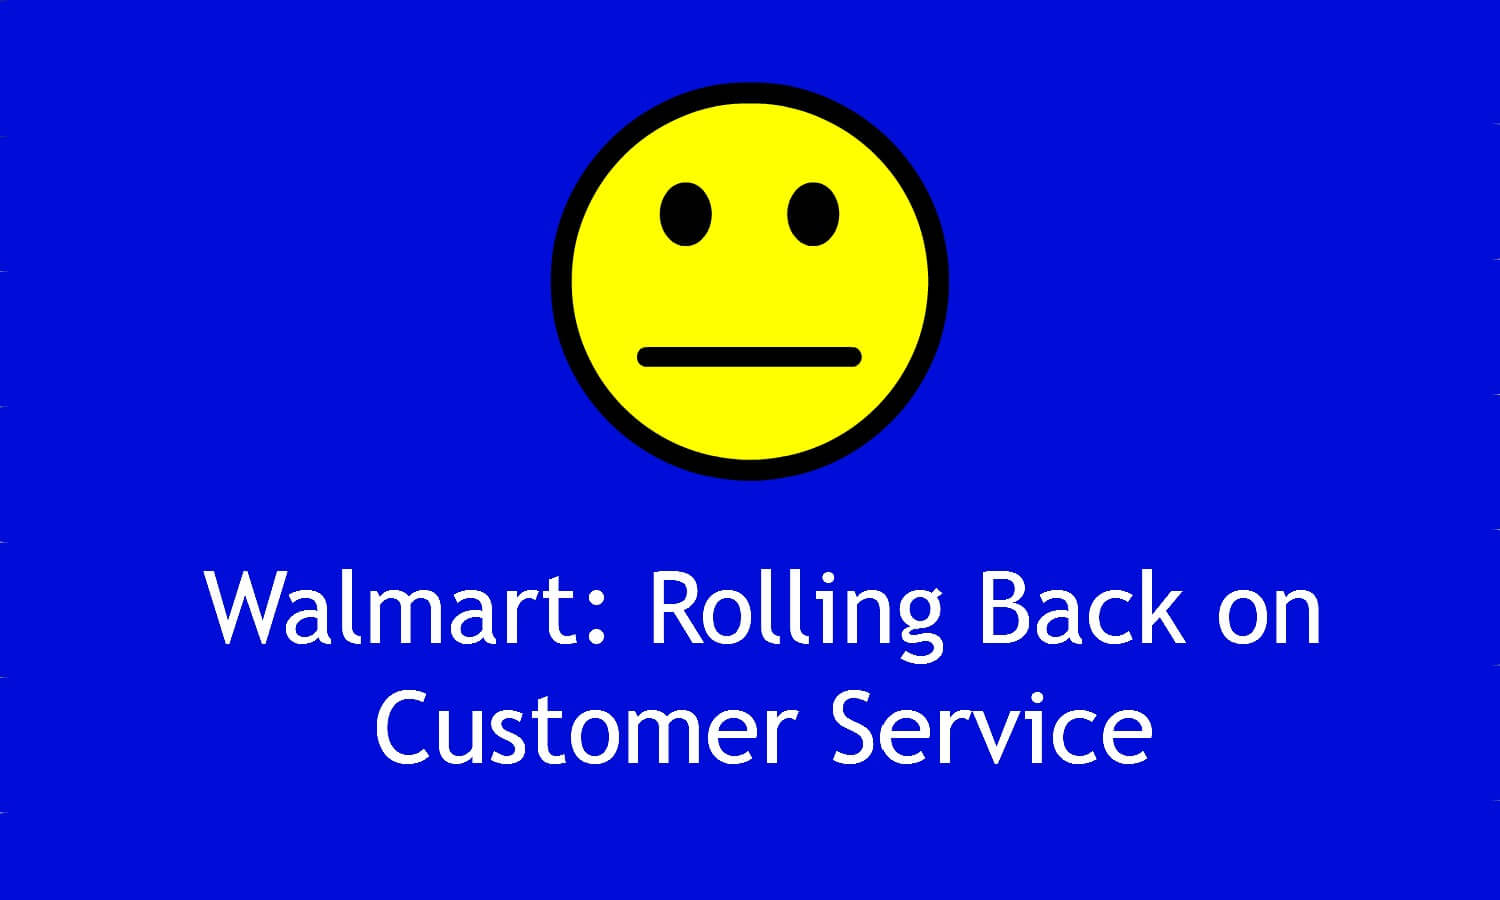 Walmart: An Exercise in Bad Customer Service - Clarity Creative